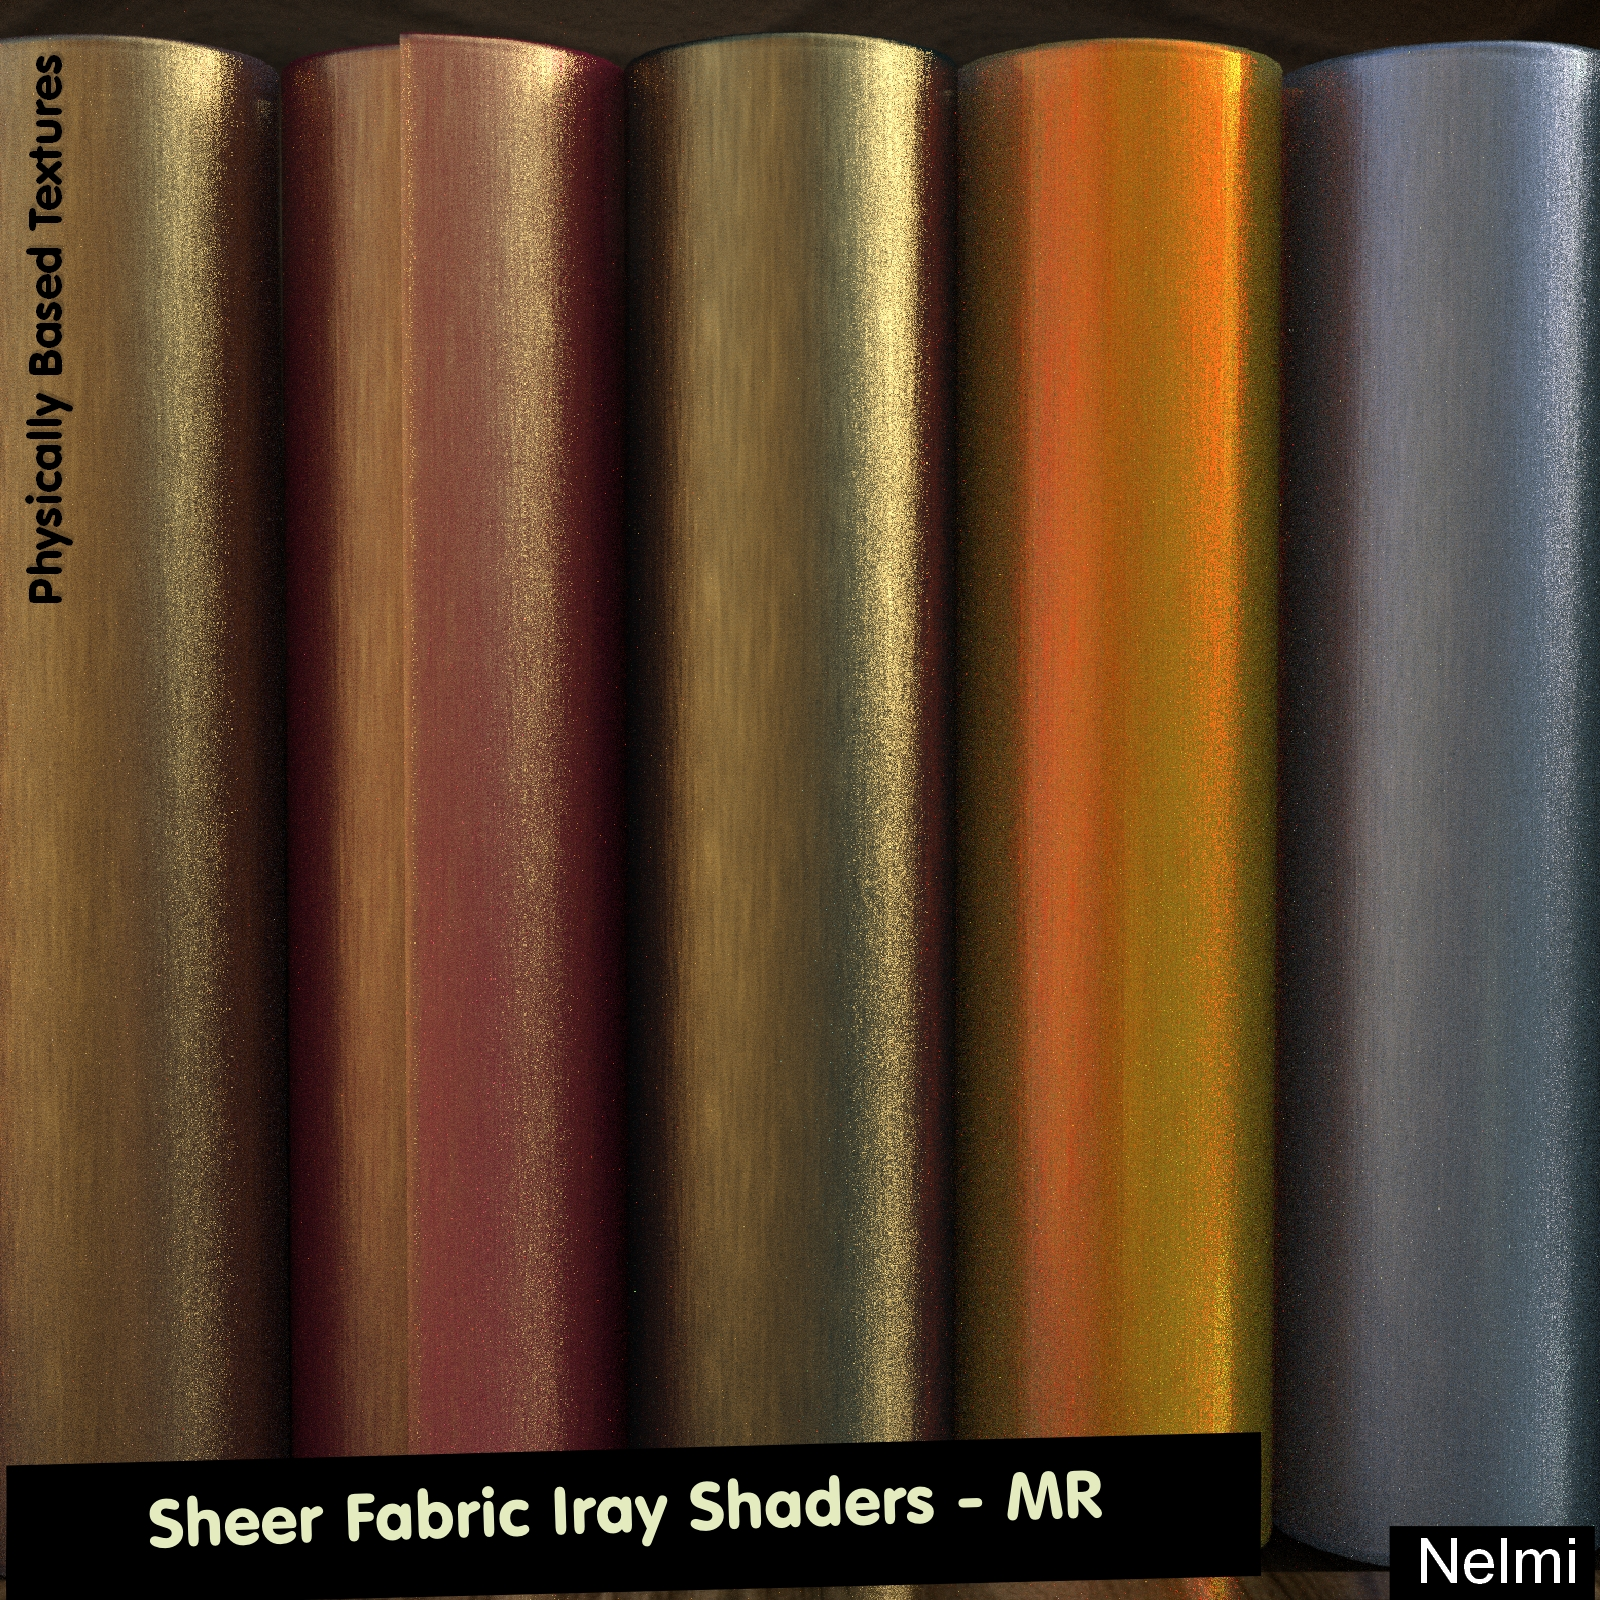 Sheer fabric Iray Shaders - Merchant Resource 3D Figure Assets